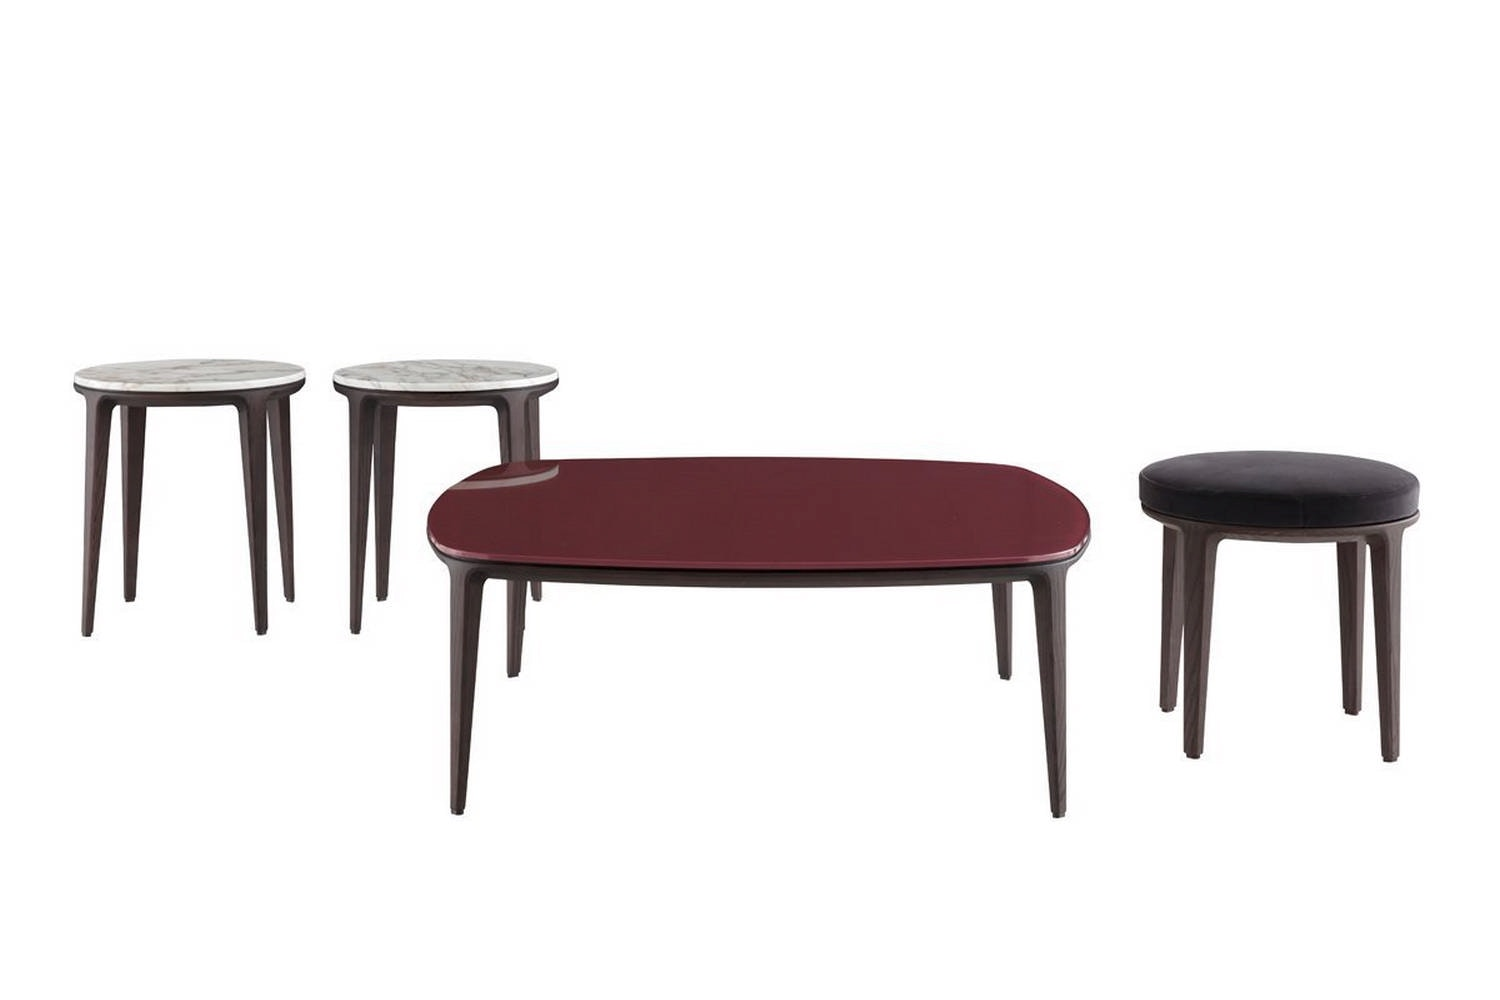 Henry Coffee Table by Emmanuel Gallina for Poliform